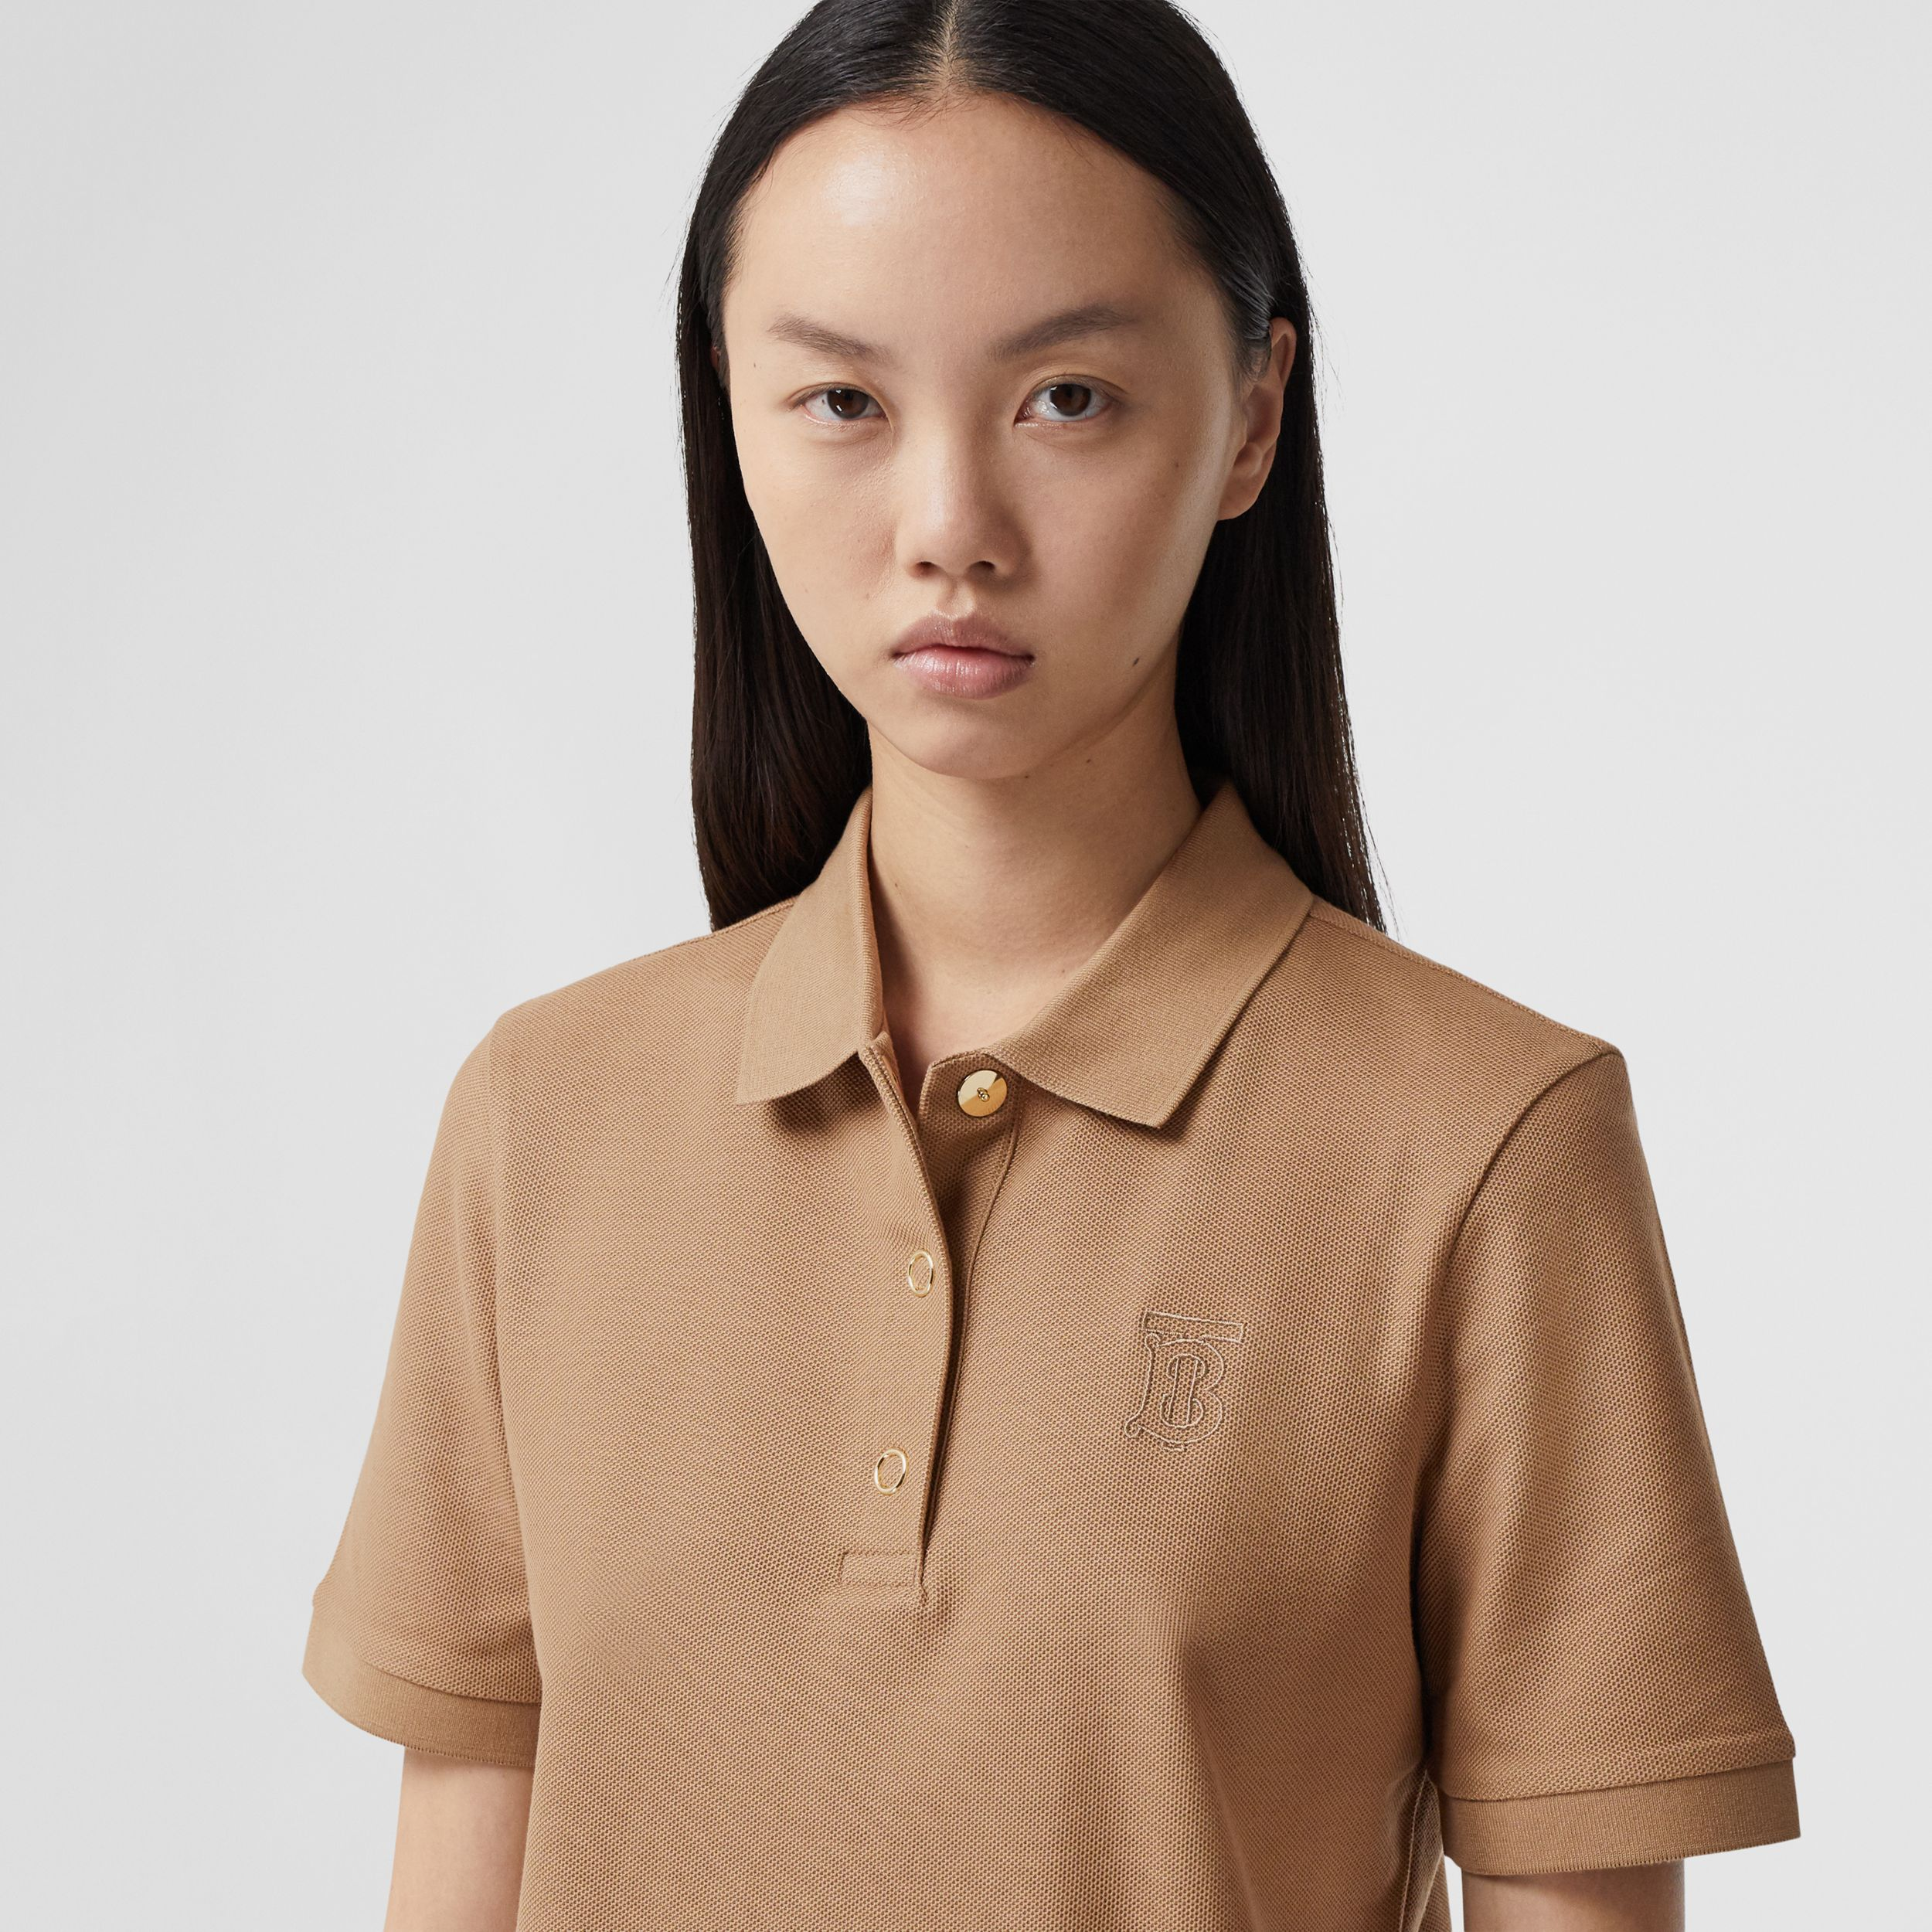 Monogram Motif Cotton Piqué Polo Shirt in Camel - Women | Burberry Hong Kong S.A.R. - 2